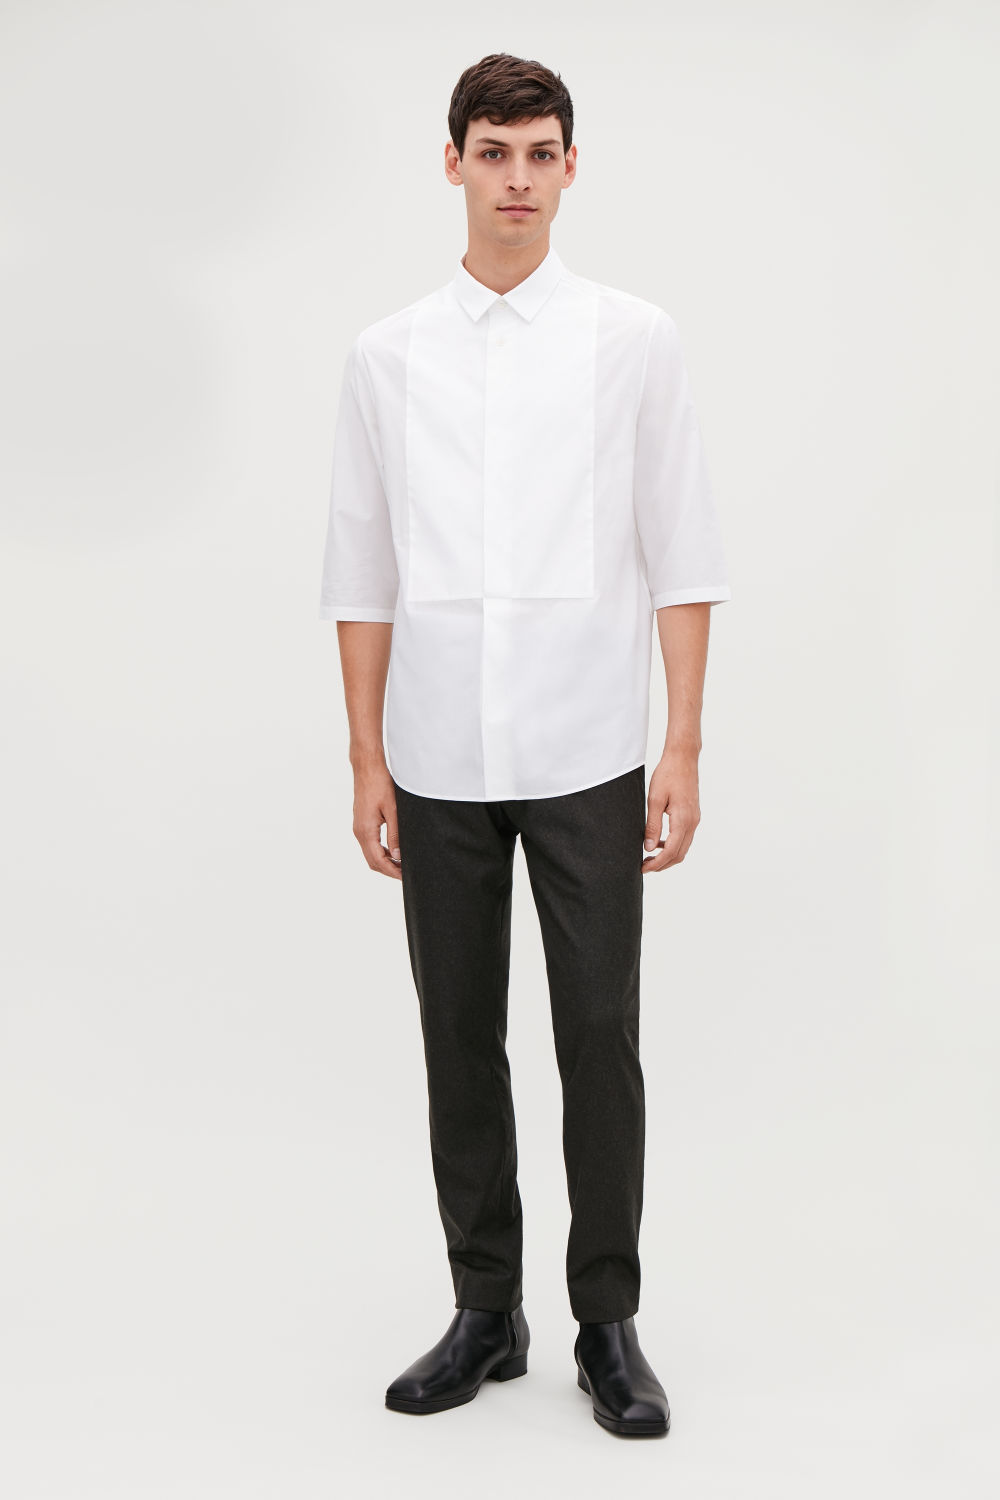 ¾-SLEEVED COTTON SHIRT